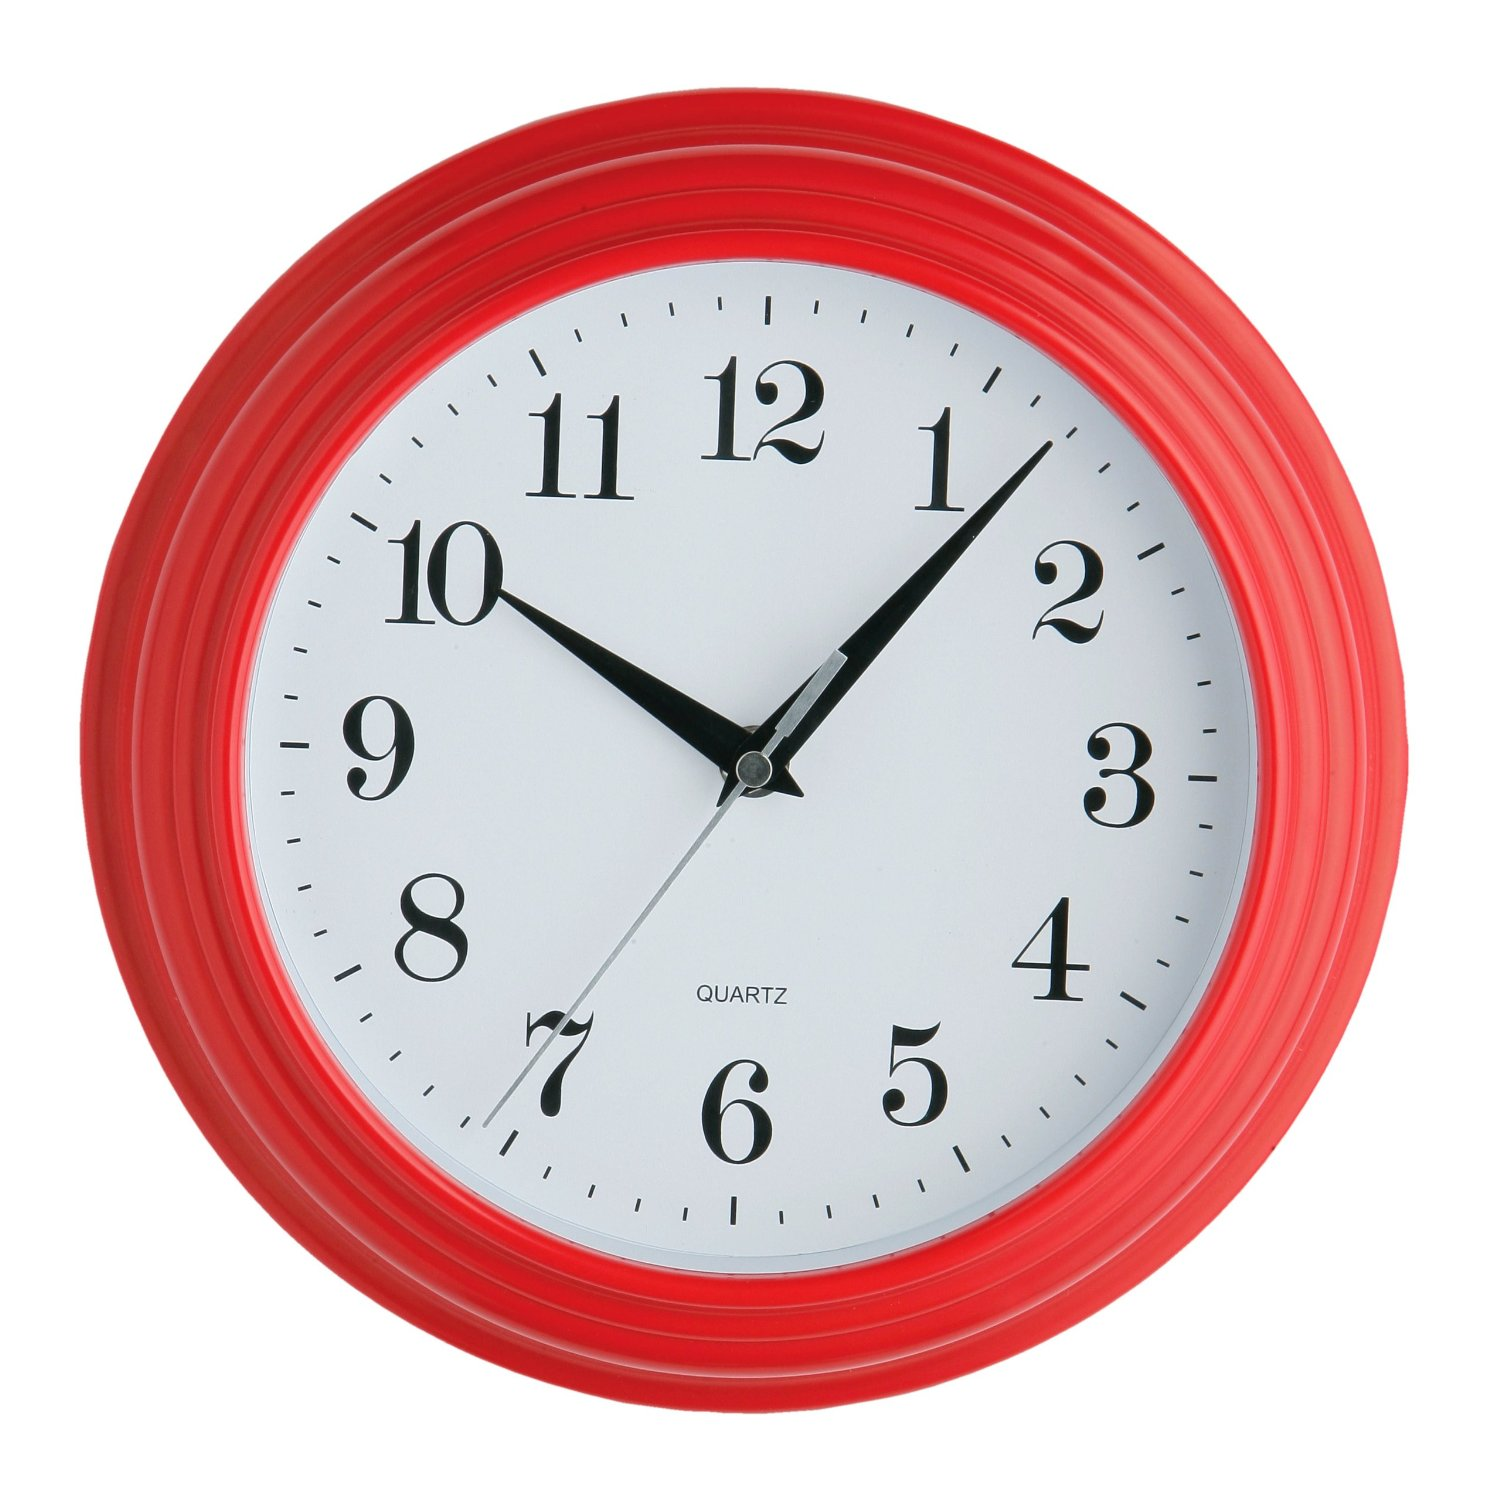 VINTAGE RED WALL CLOCK SMALL 26CM DIAMETER RETRO QUARTZ